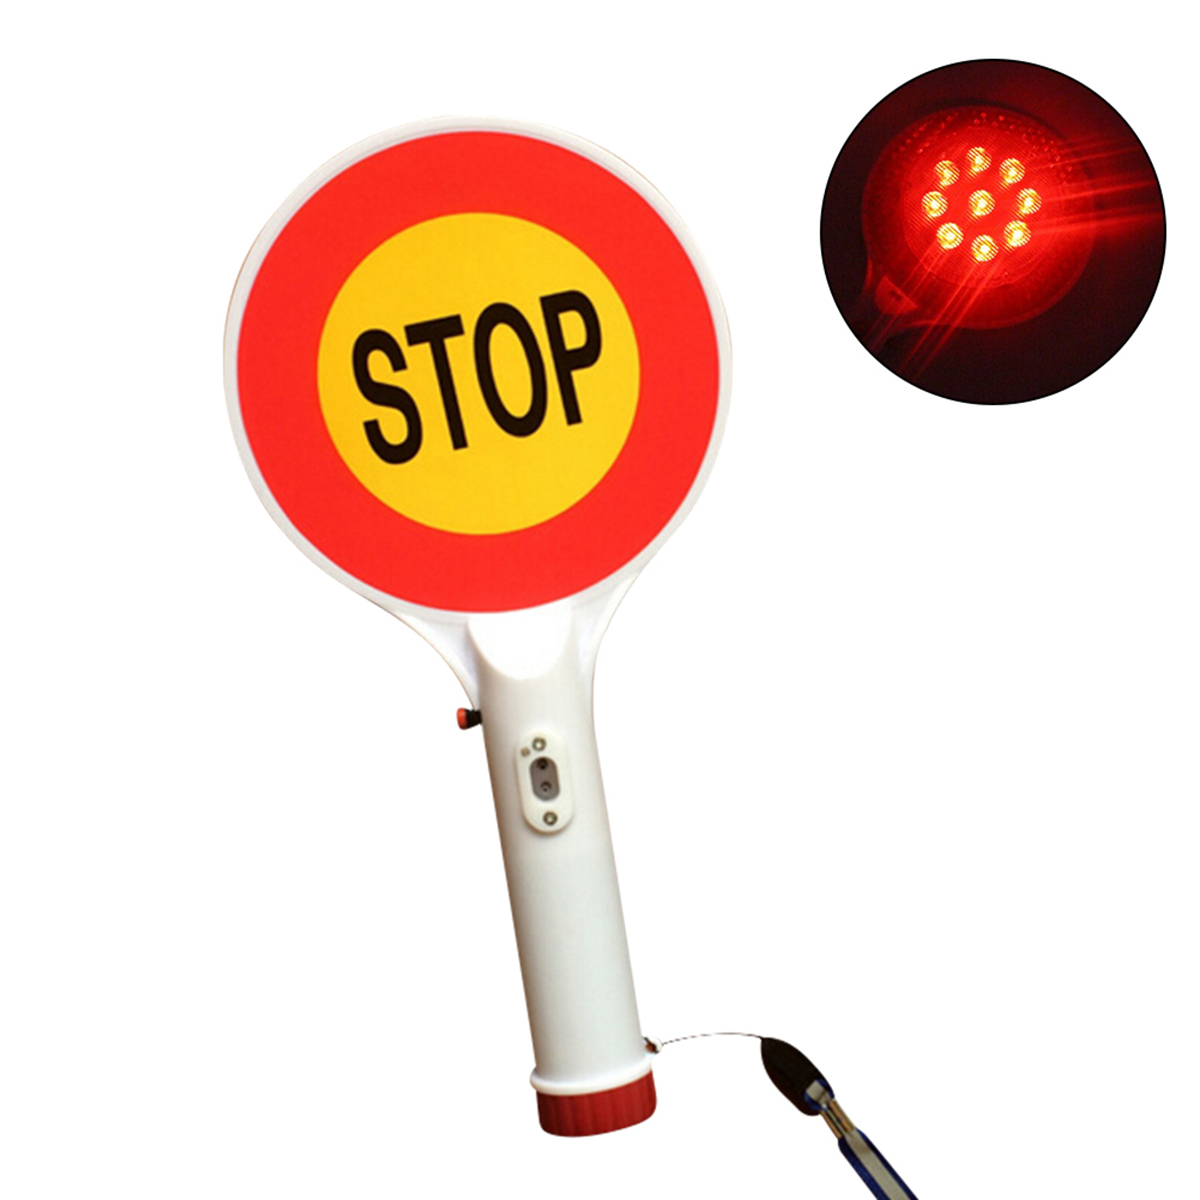 Handheld LED Traffic Sign Stop Light Rechargeable Car Warning Sign Flashlight​ For Traffic Control Blocked Road Free Shipping